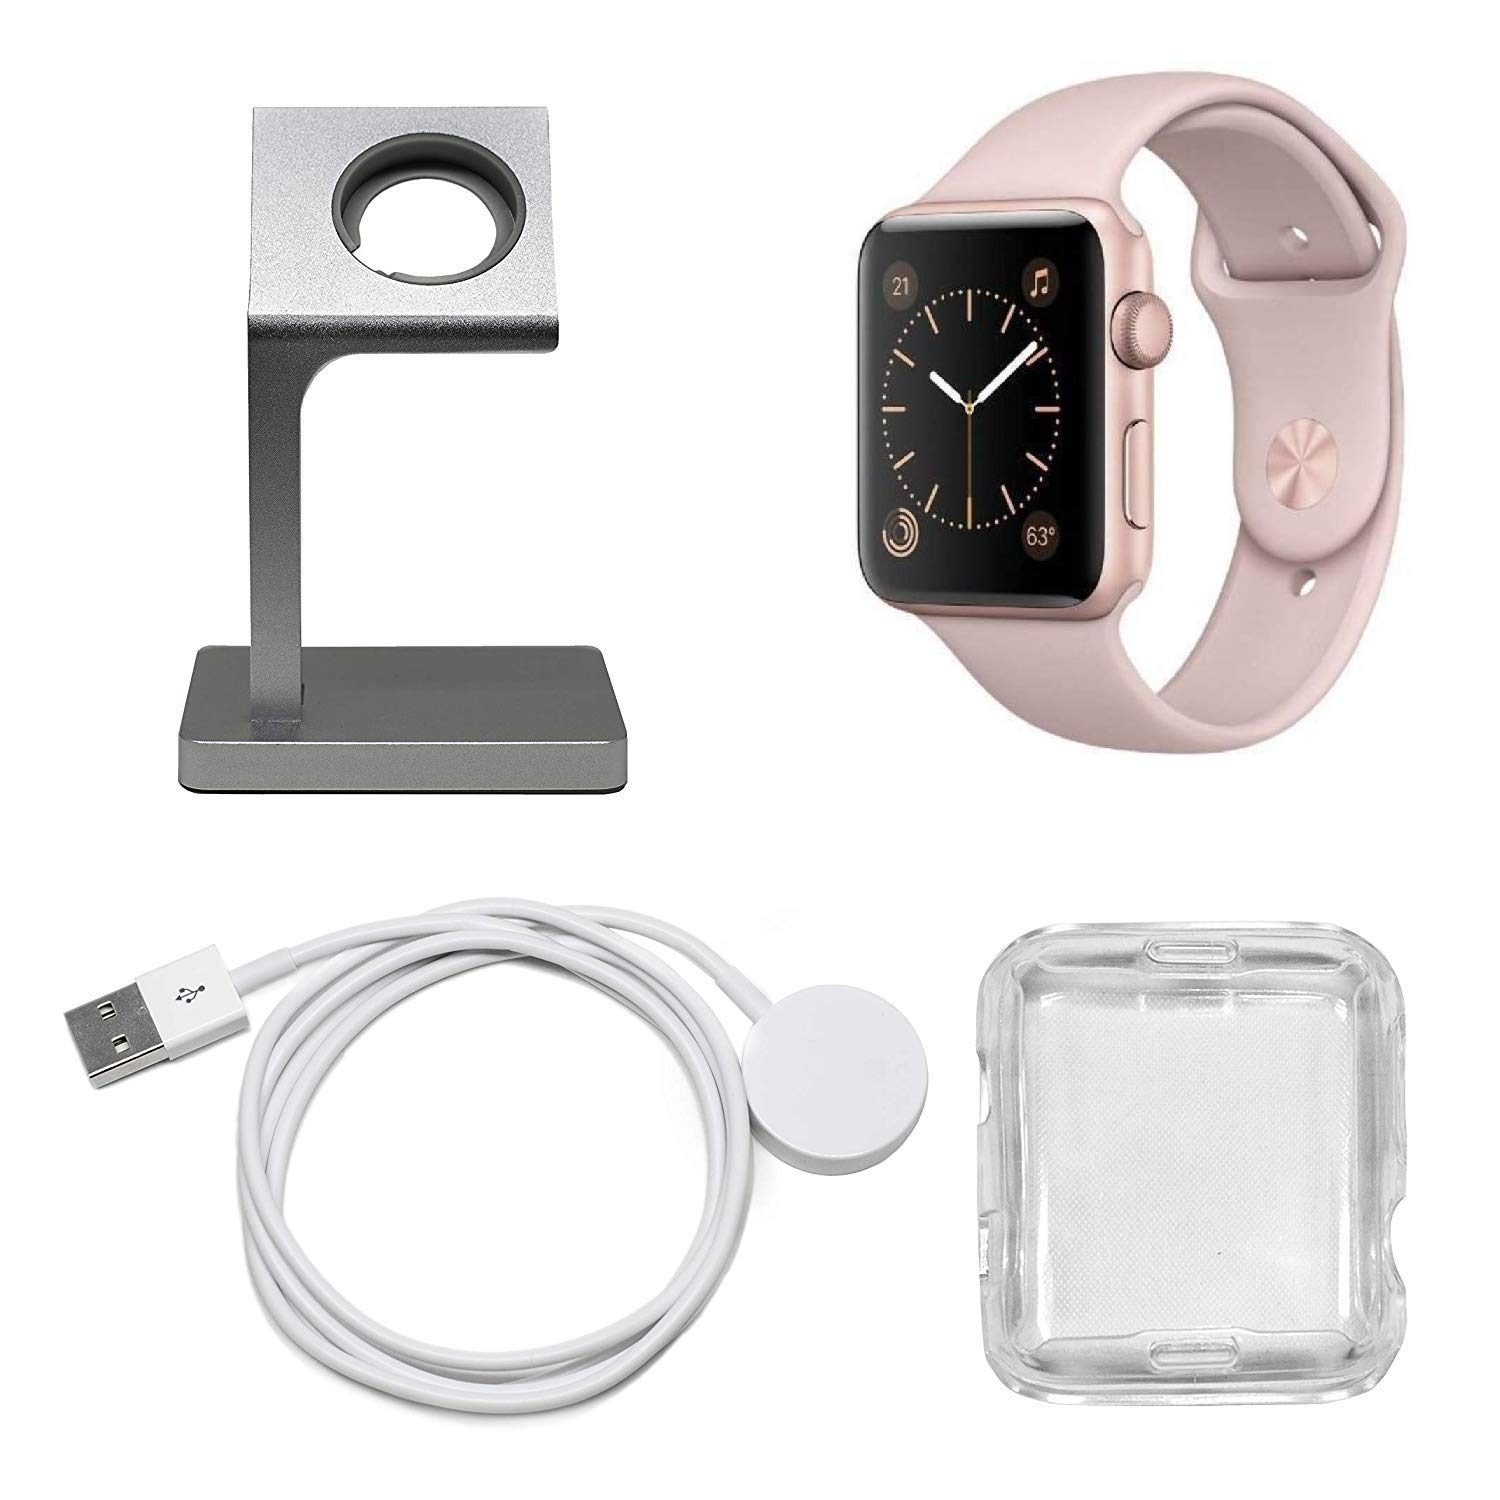 Apple Watch Series 1 Smartwatch Plus Charging Stand, Extra Charging Cable and Clear Fitted Protective Case (38mm, Rose Gold Aluminum Case, Pink Sand Sport Band) (Renewed)